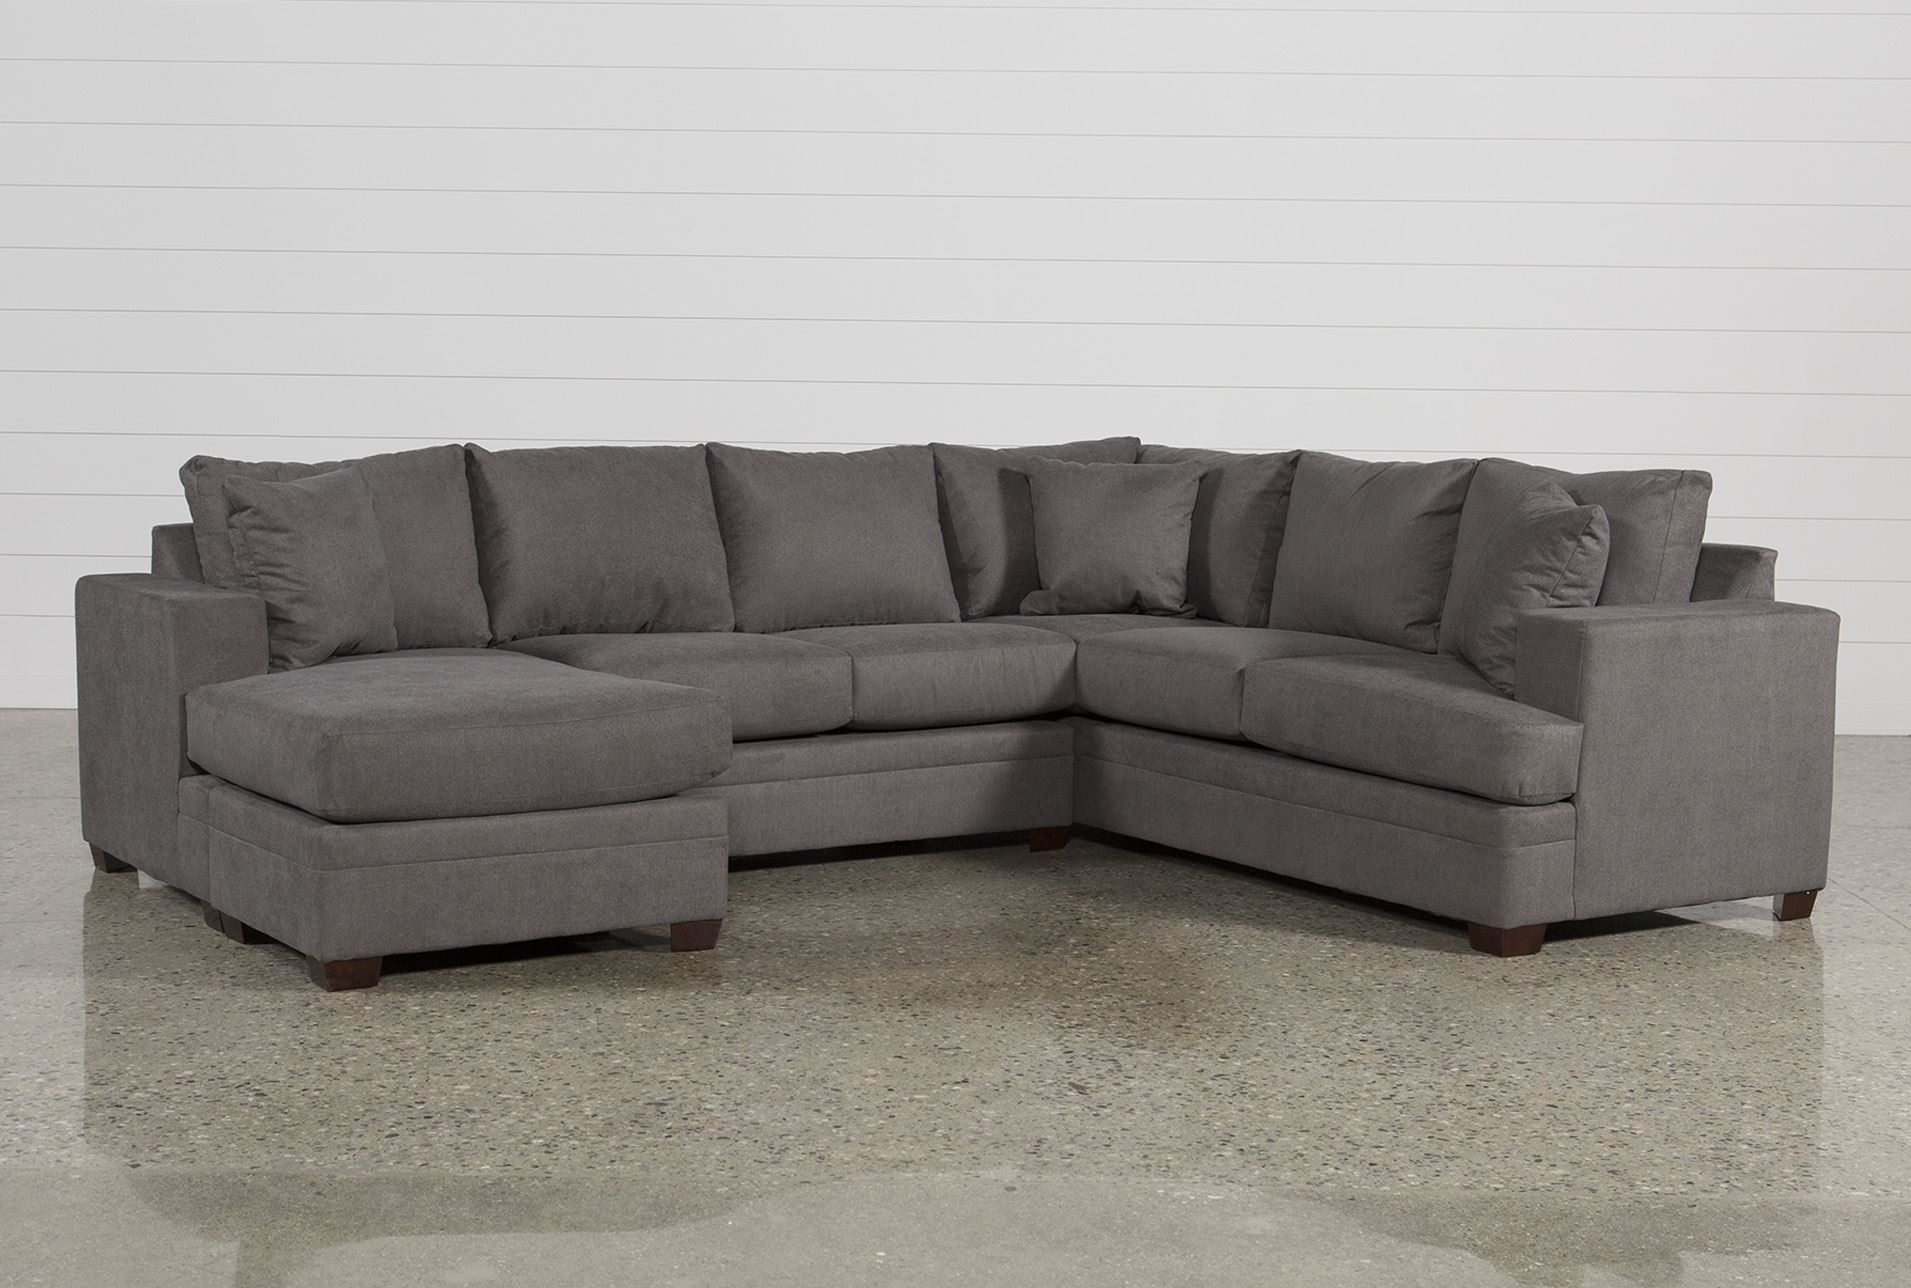 Sofa Protector – Erwinmiradi for Lucy Grey 2 Piece Sectionals With Laf Chaise (Image 29 of 30)